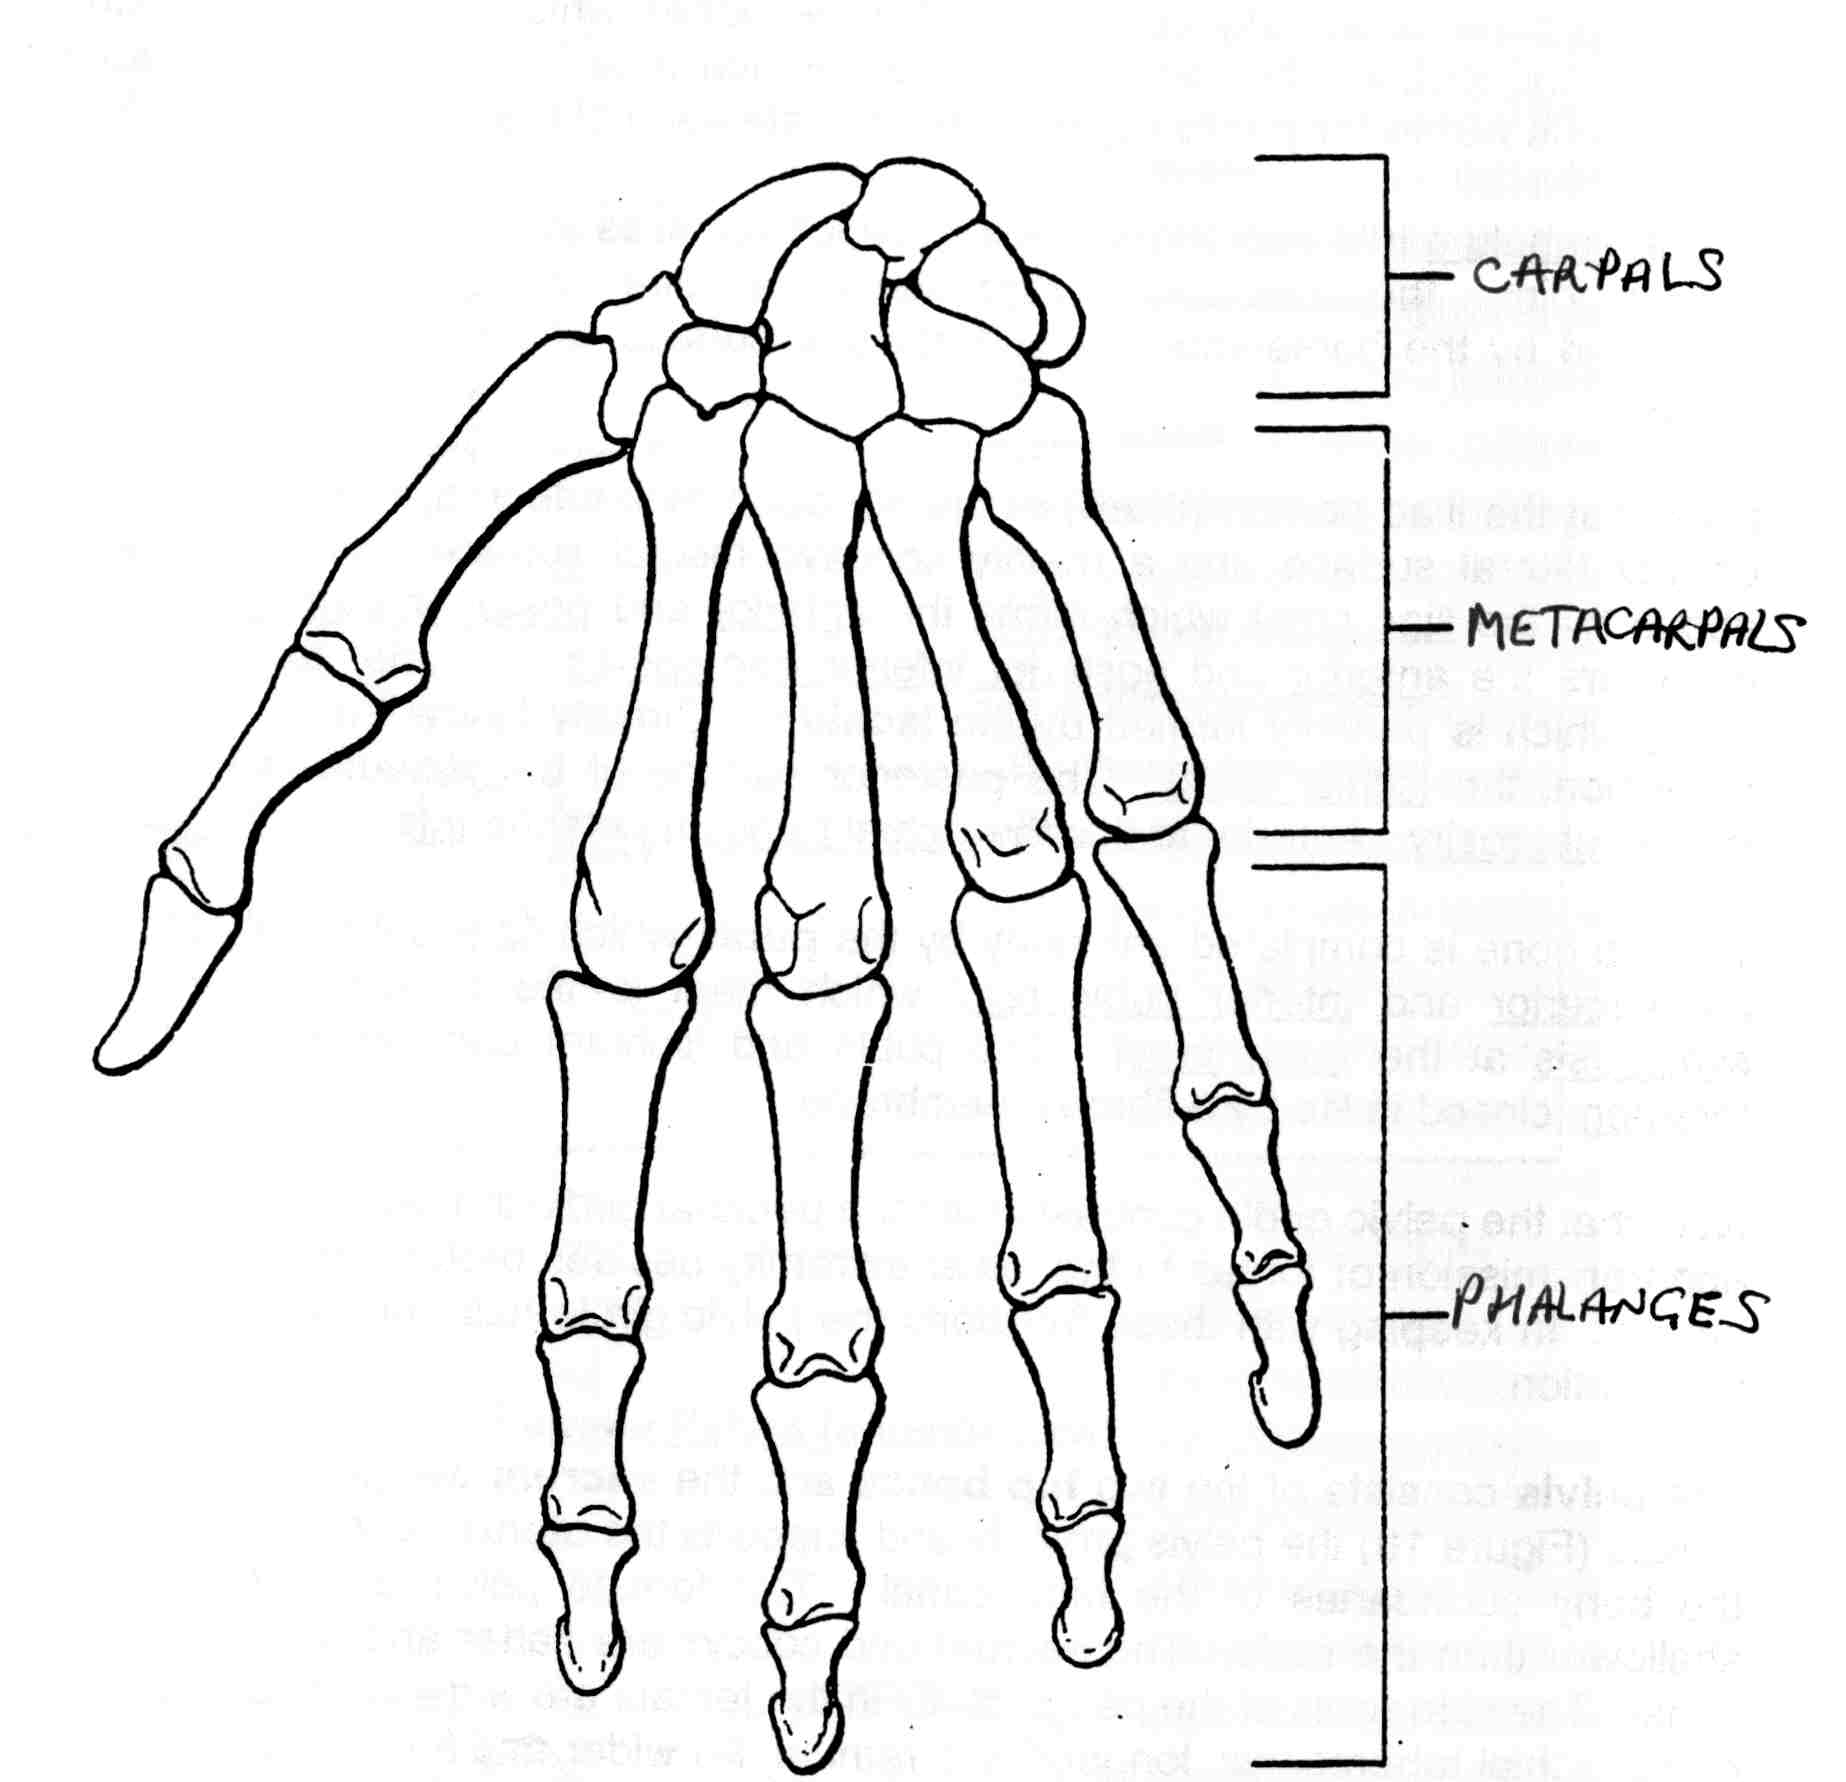 Bone Diagram Of The Arm